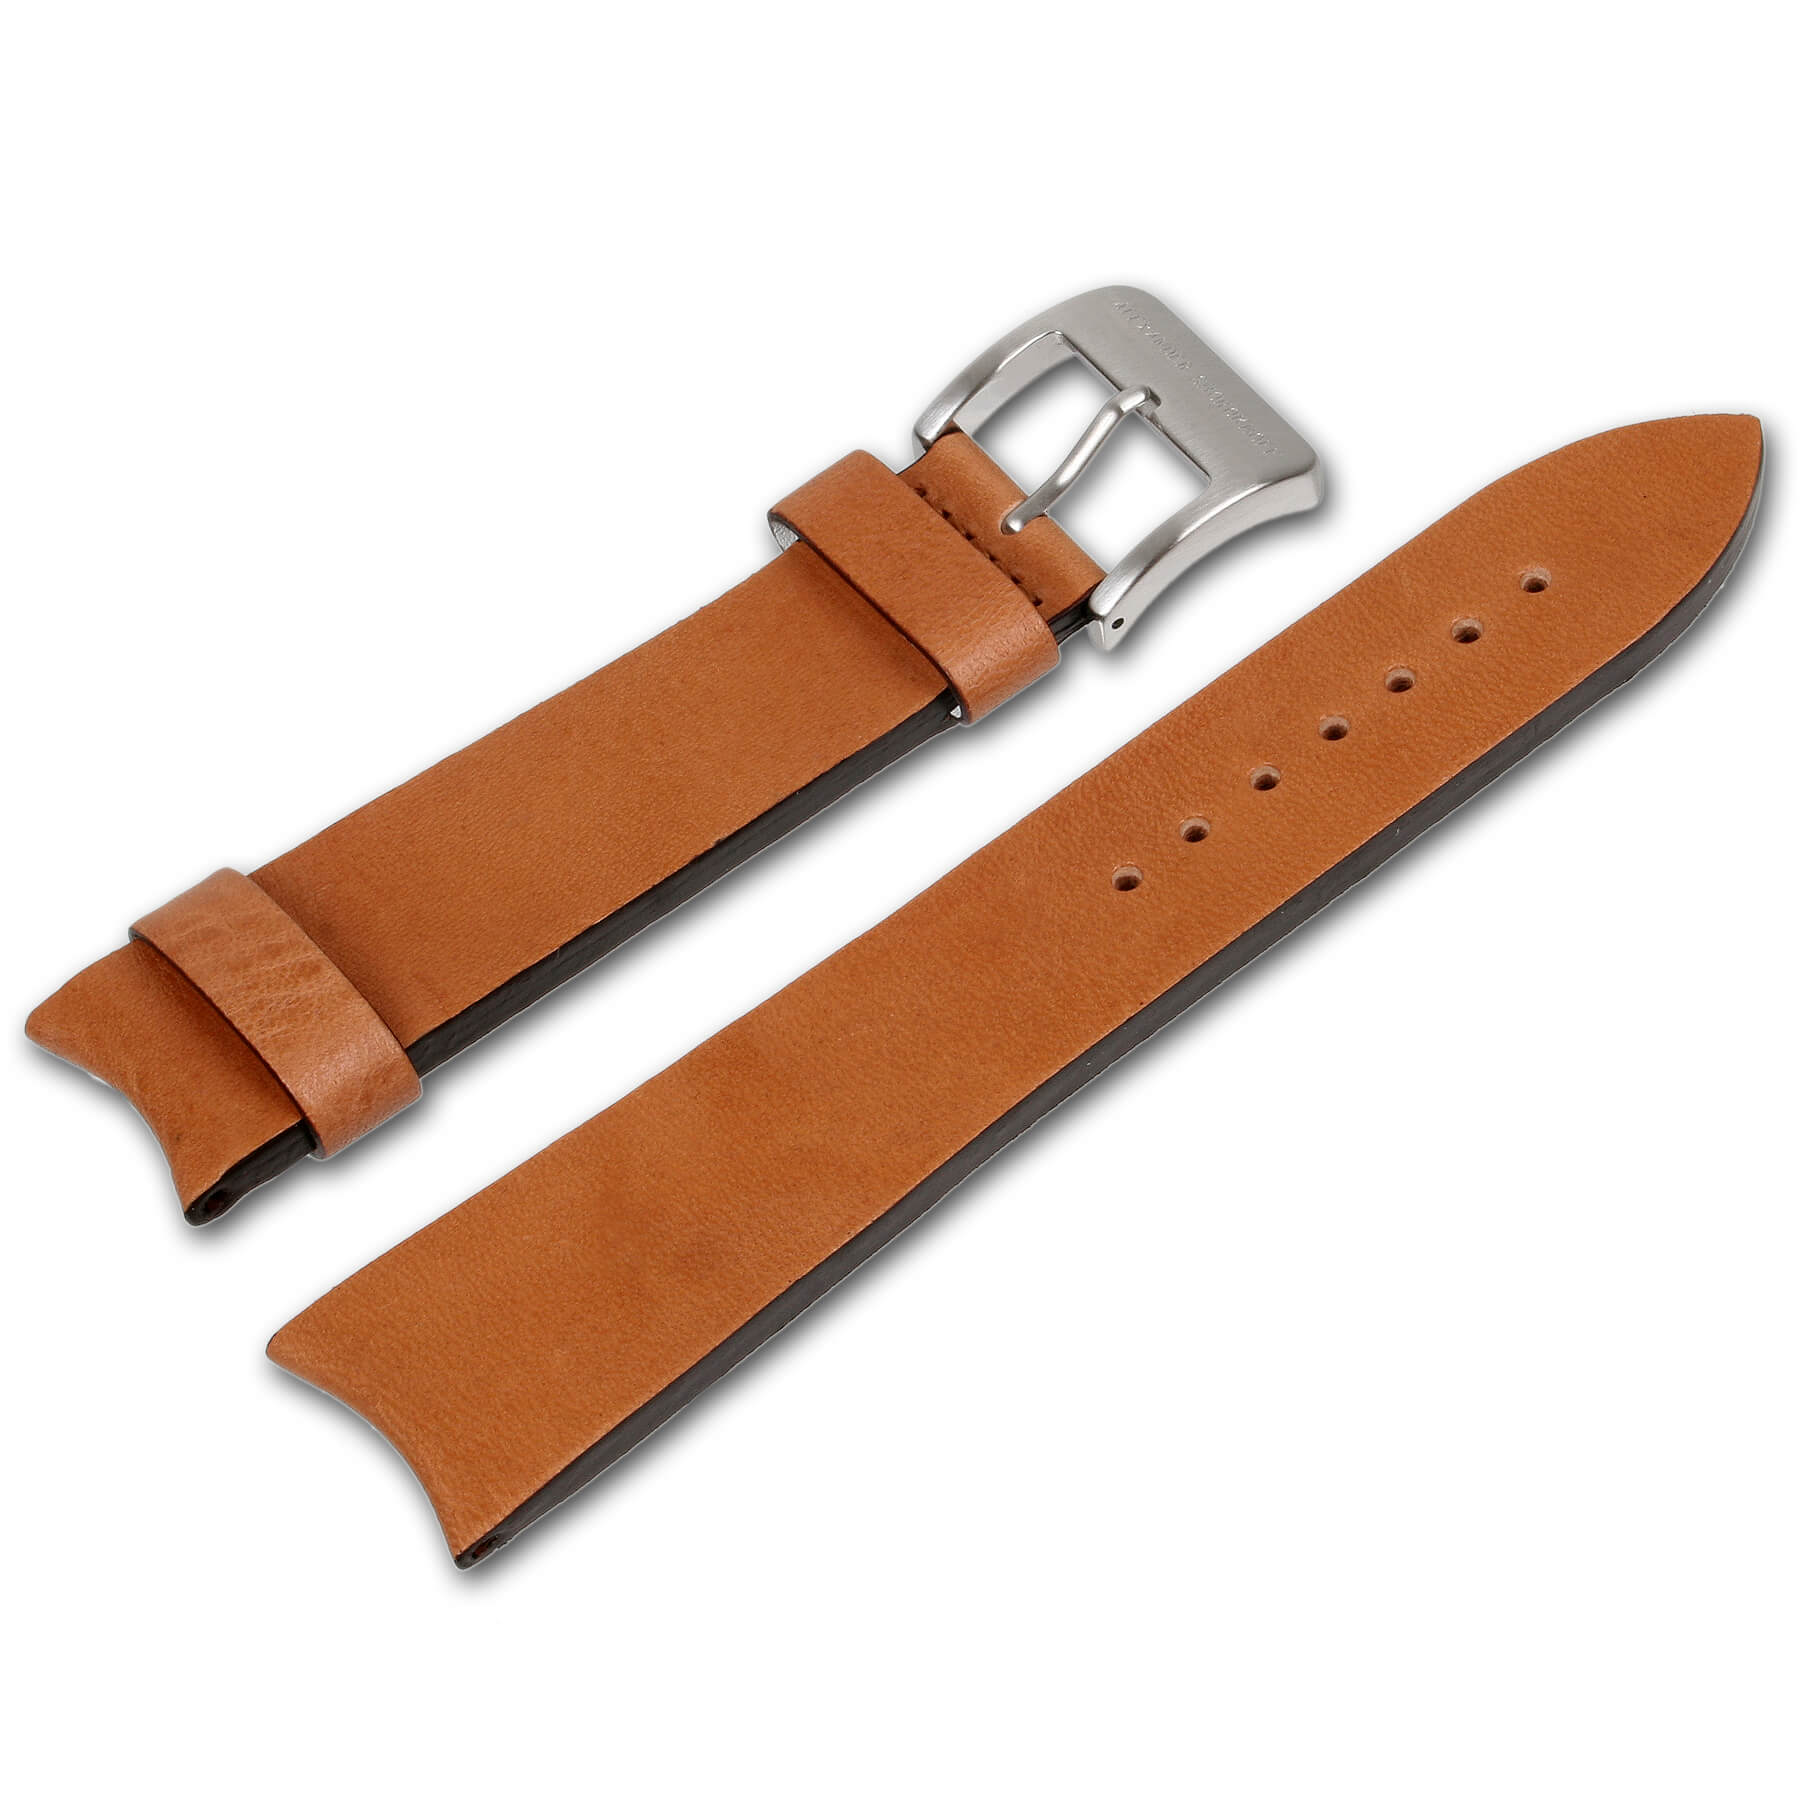 Alexander Shorokhoff - Calfskin strap with vintage look – Light Brown